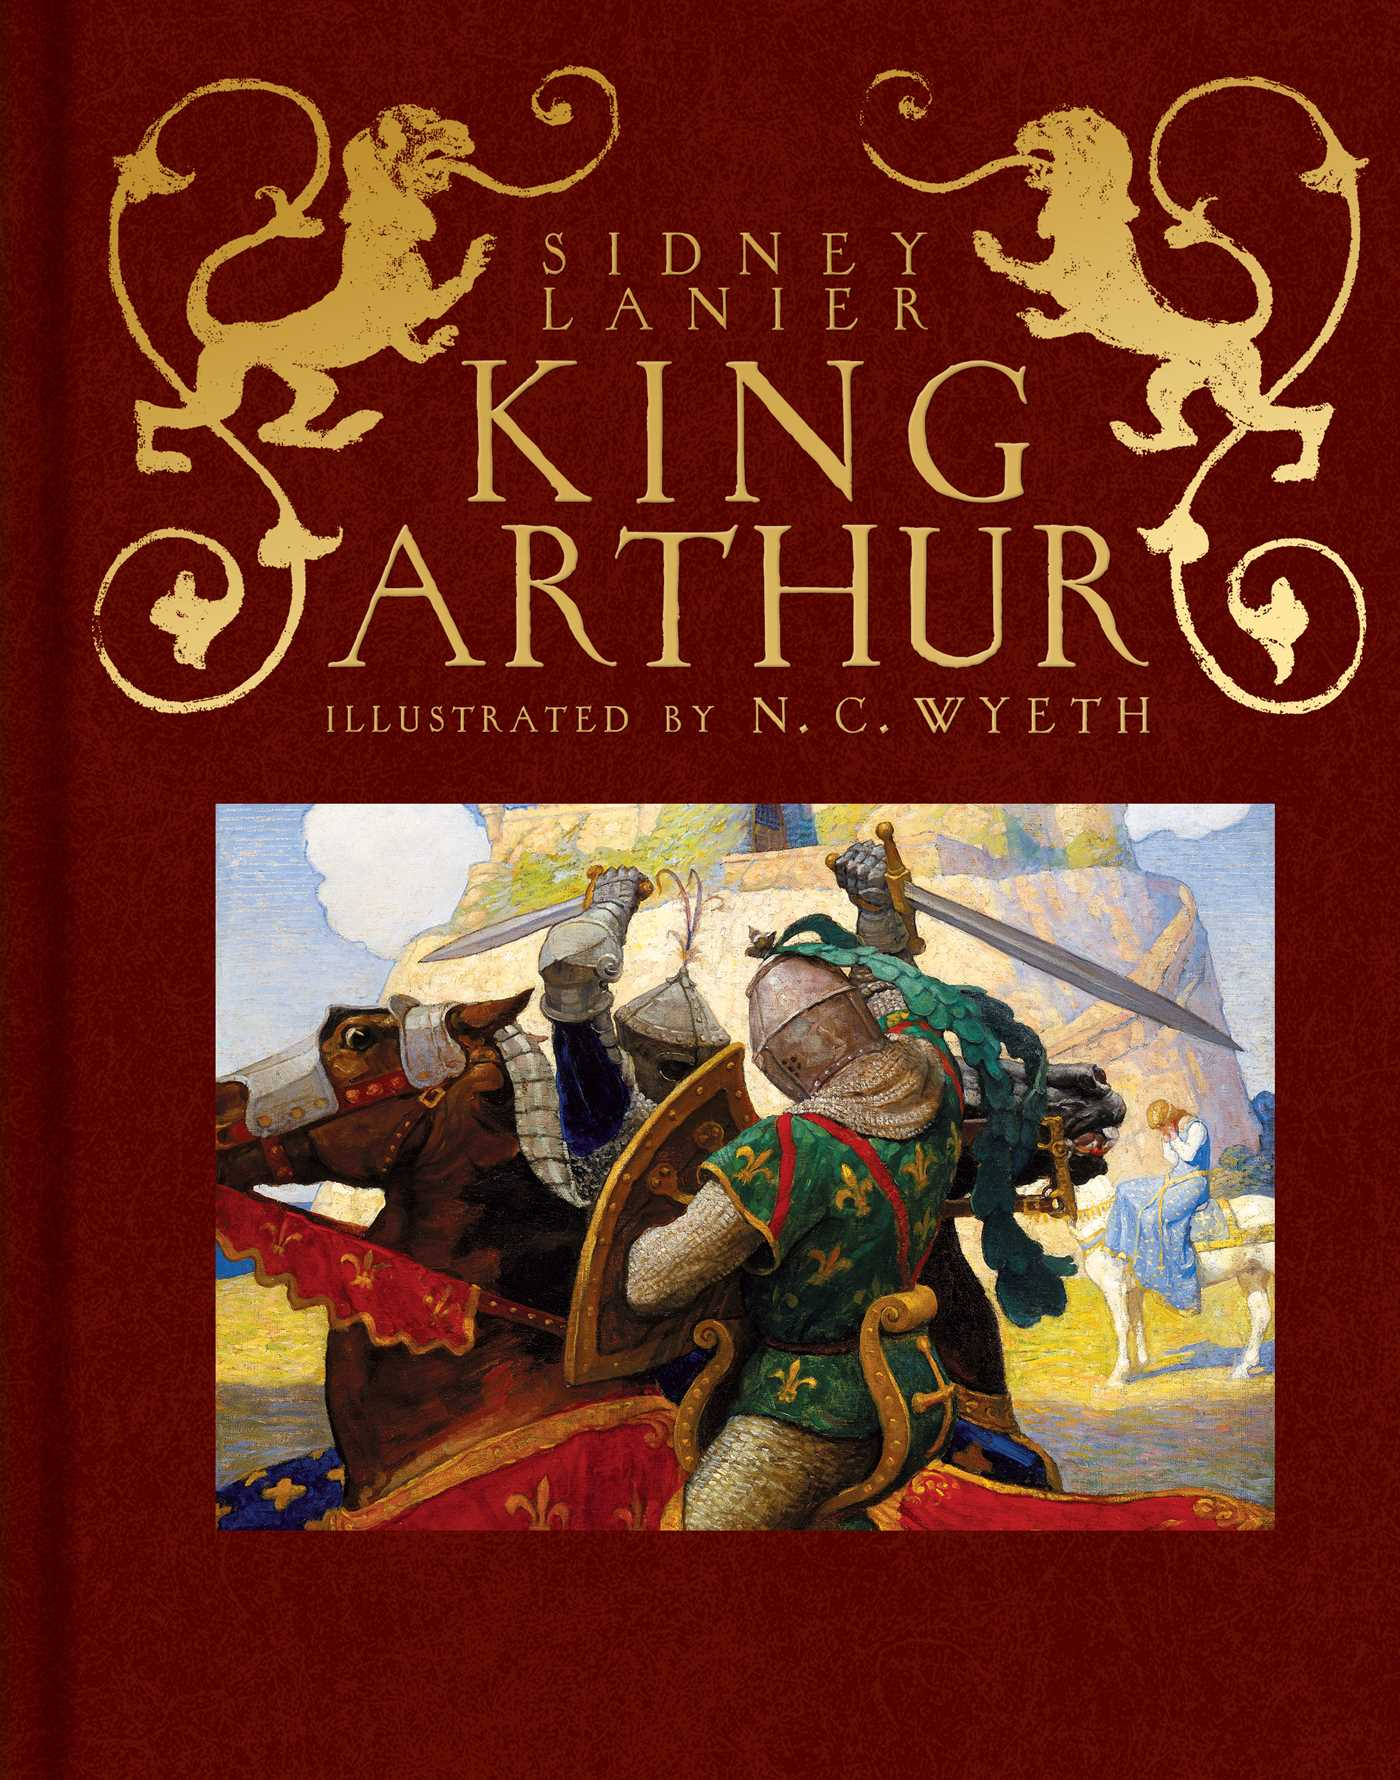 King arthur 9781534428423 hr